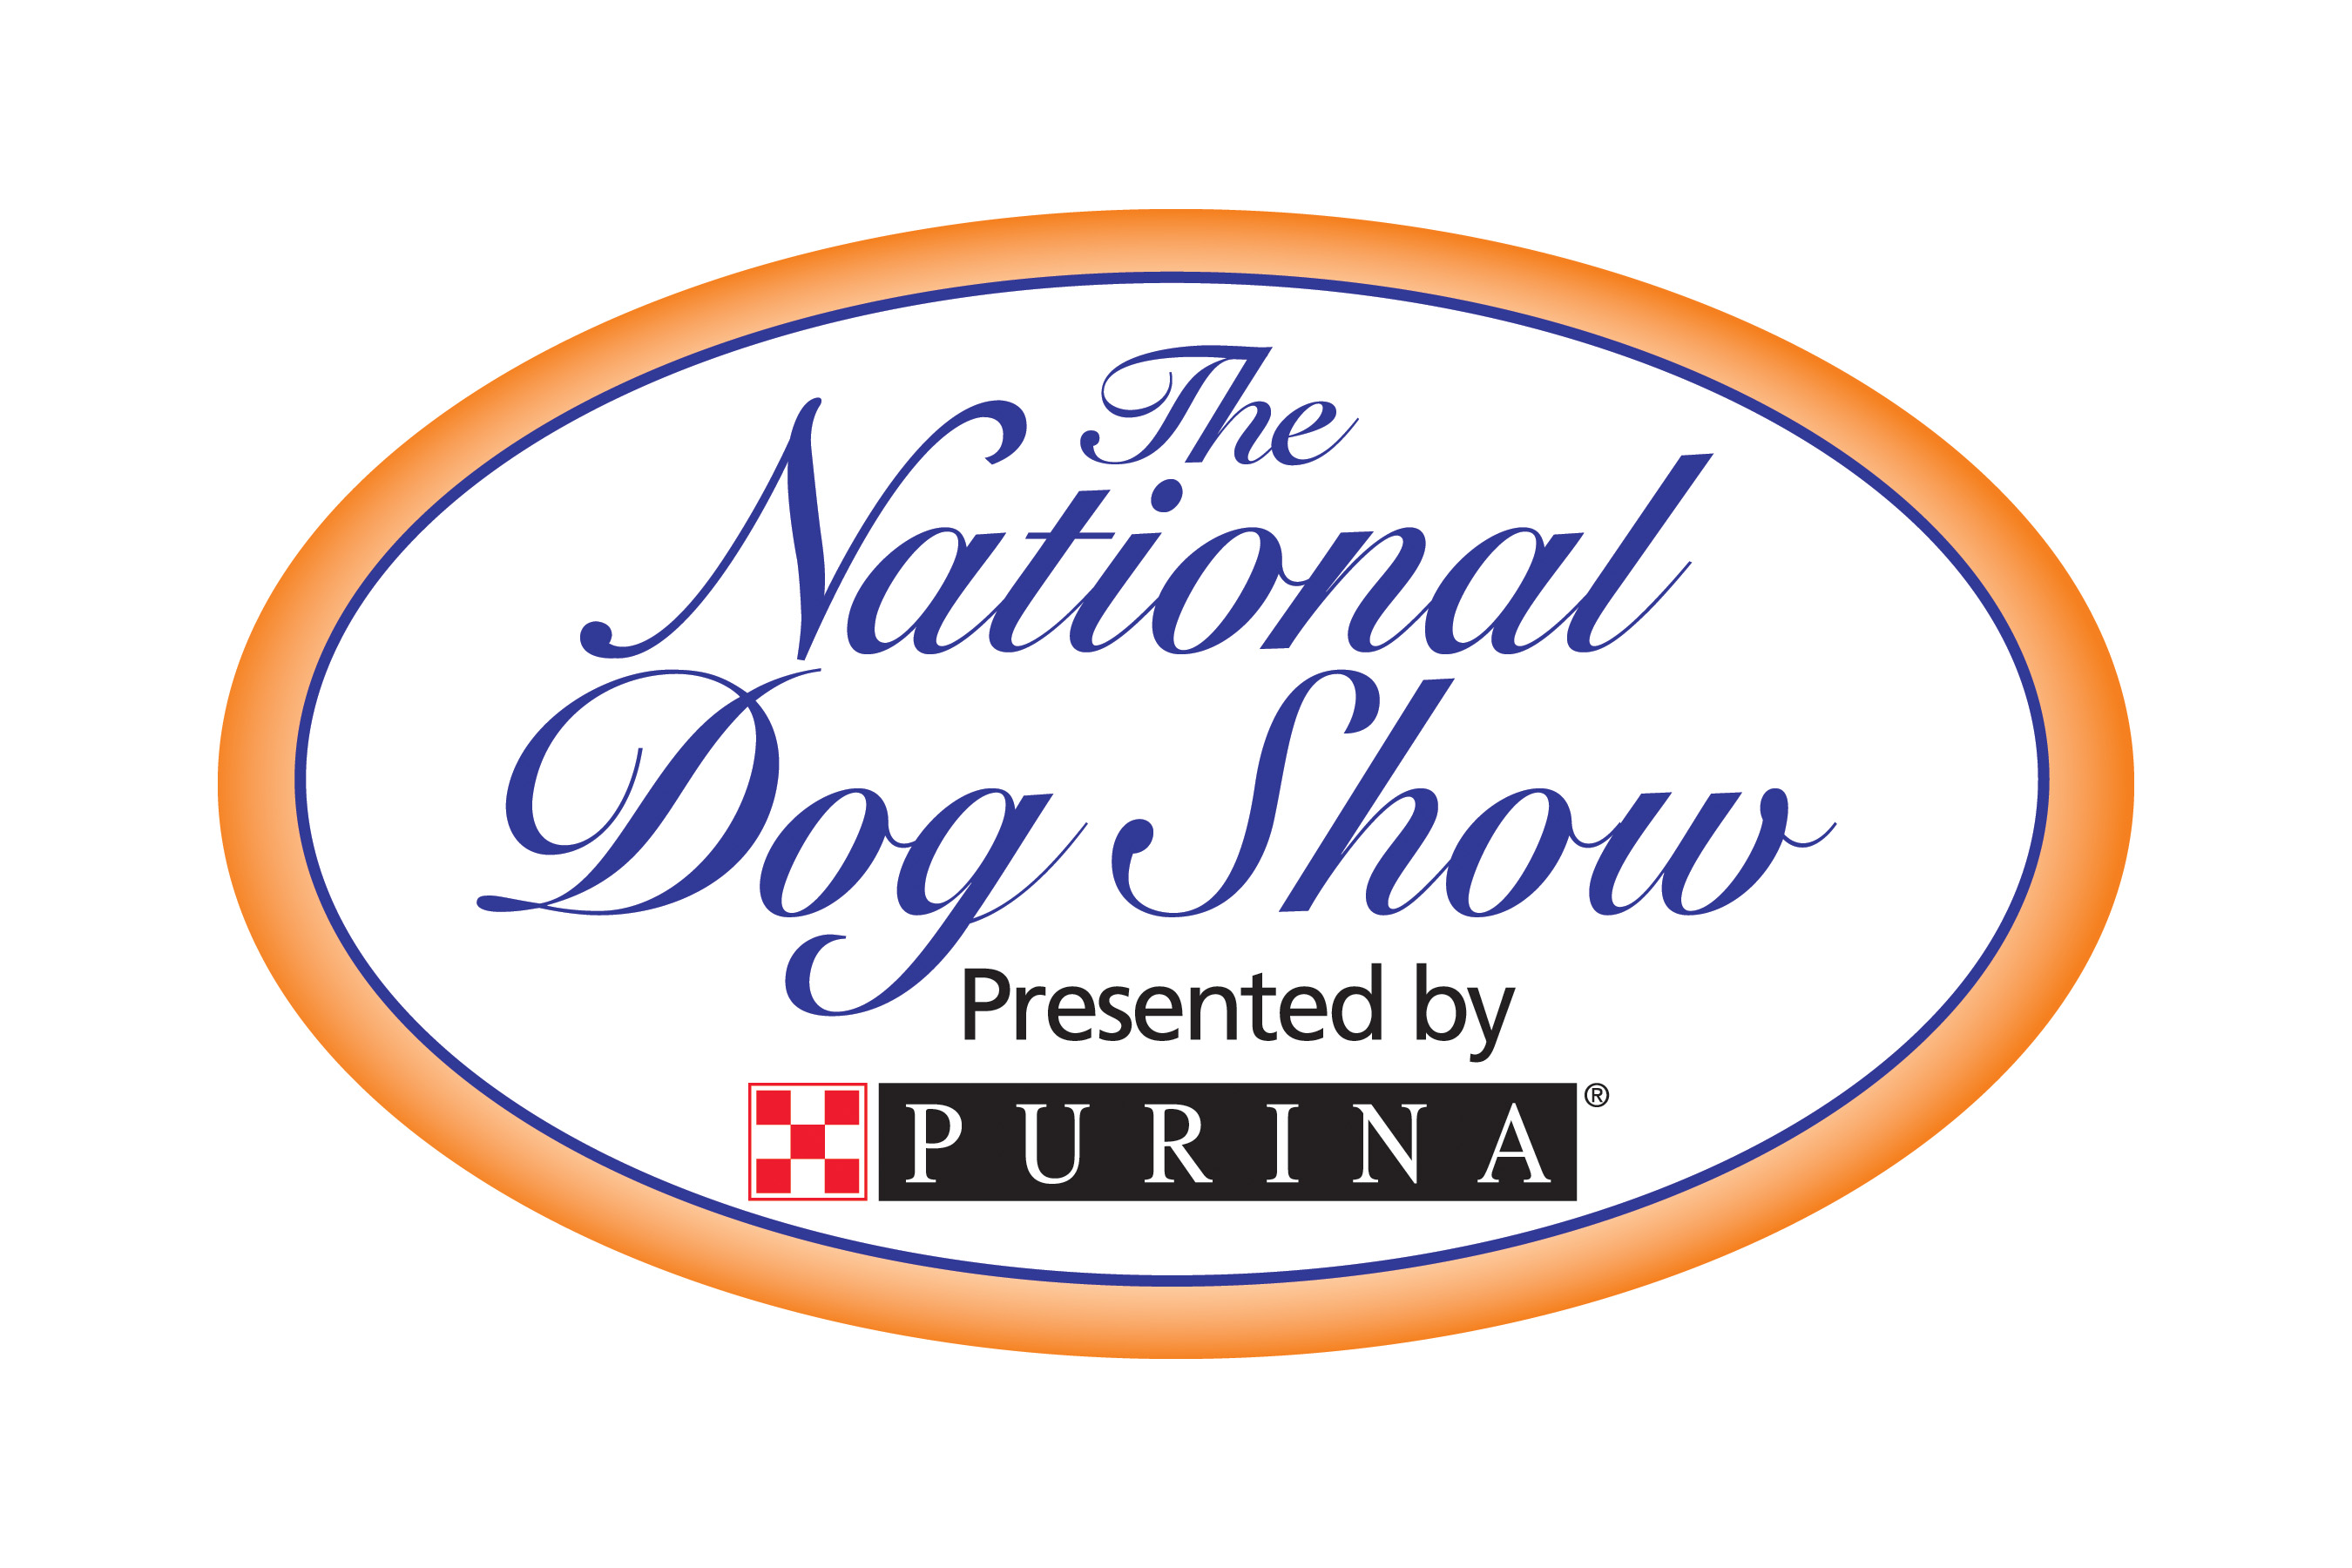 With more than 20 million viewers tuning in each year, the National Dog Show Presented by Purina will premiere on Thanksgiving Day on NBC at noon in all time zones. Watch as one of America's great dogs is crowned champion.